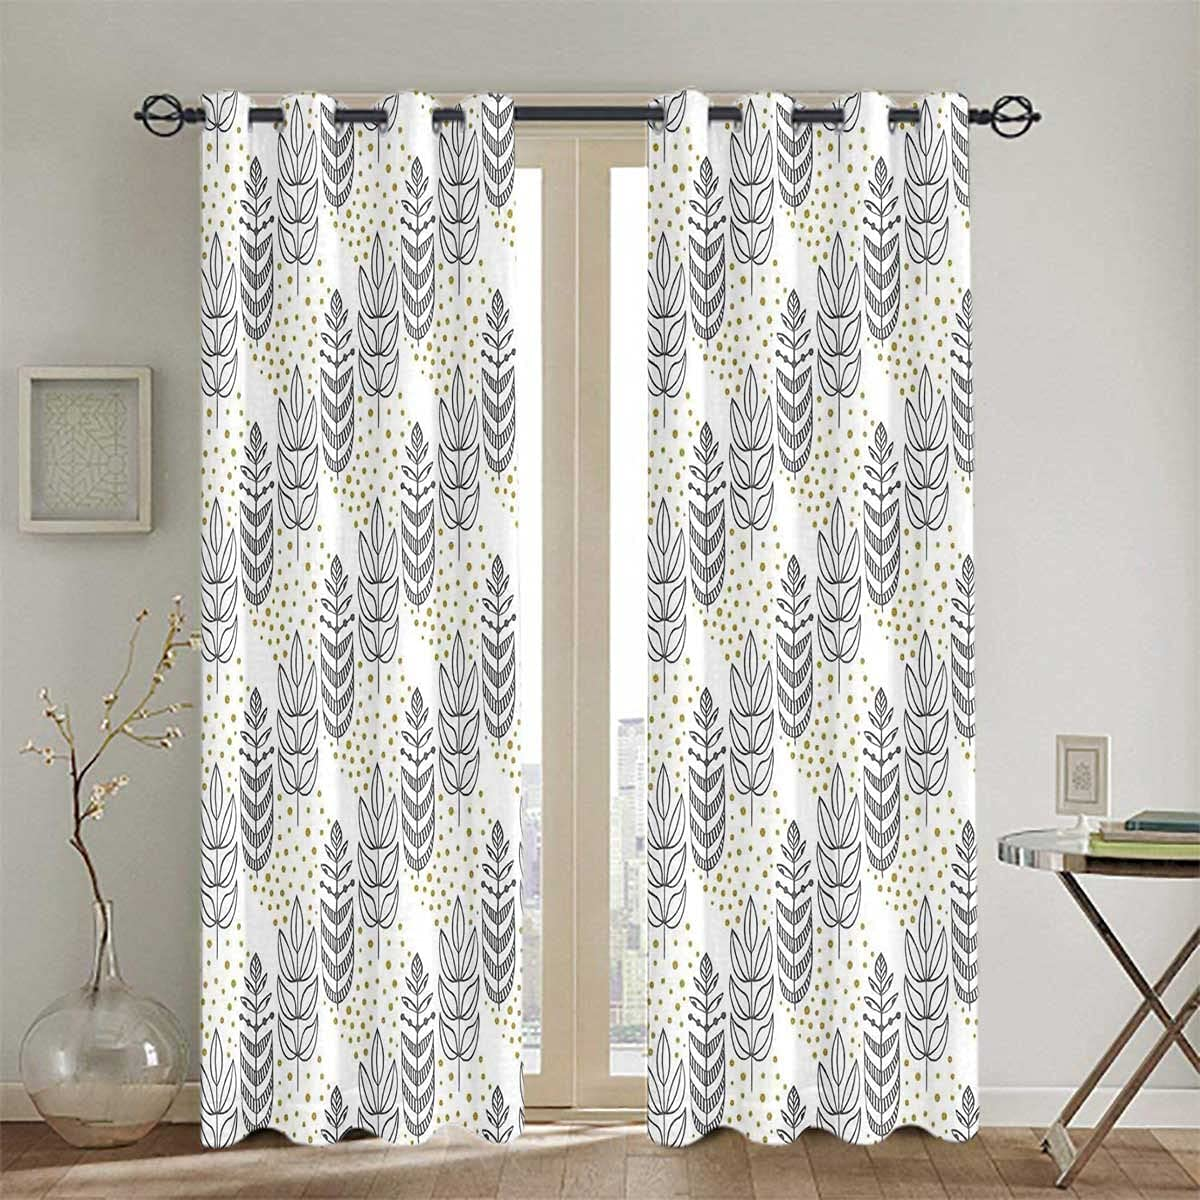 Max 78% OFF Blackout Curtains Bedroom Insulated Darkening Memphis Mall Outline and Leaves